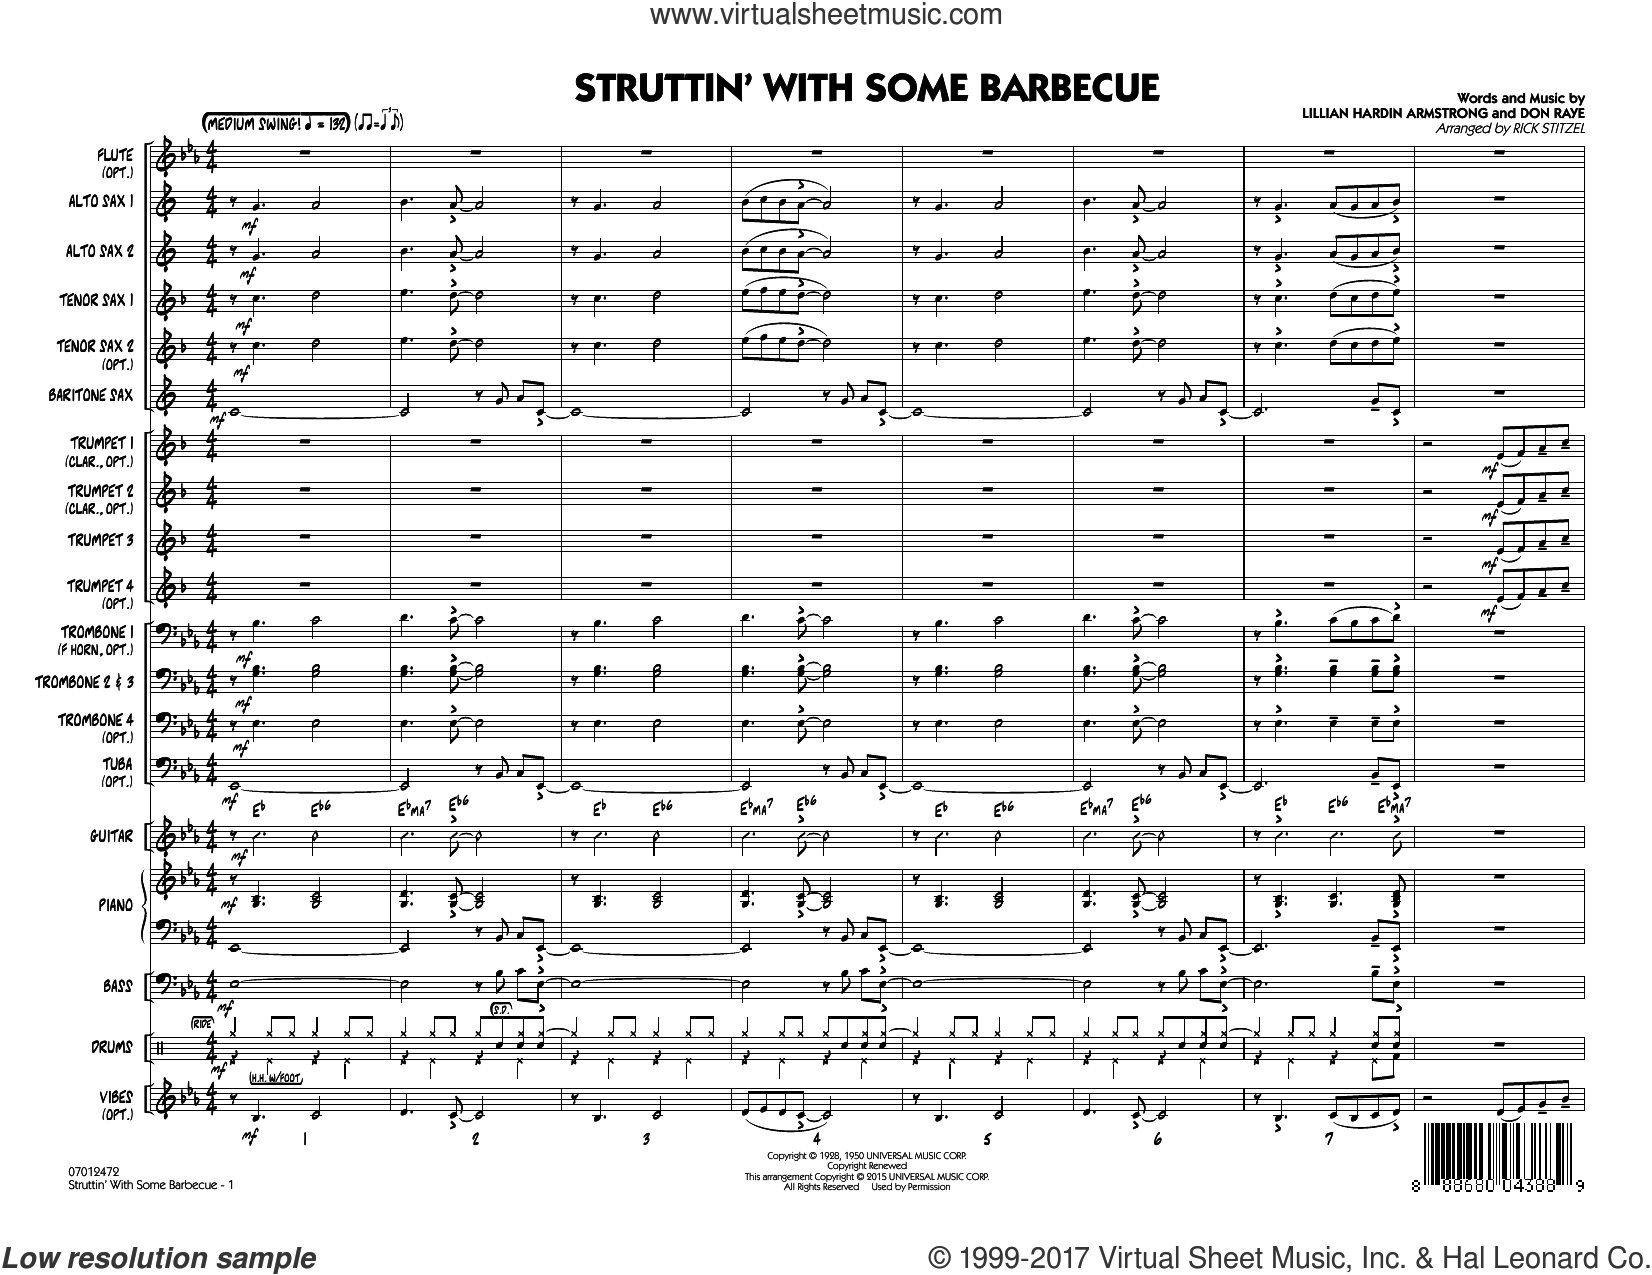 Struttin' with Some Barbecue (COMPLETE) sheet music for jazz band by Louis Armstrong, Don Raye, Lillian Hardin Armstrong and Rick Stitzel, intermediate skill level